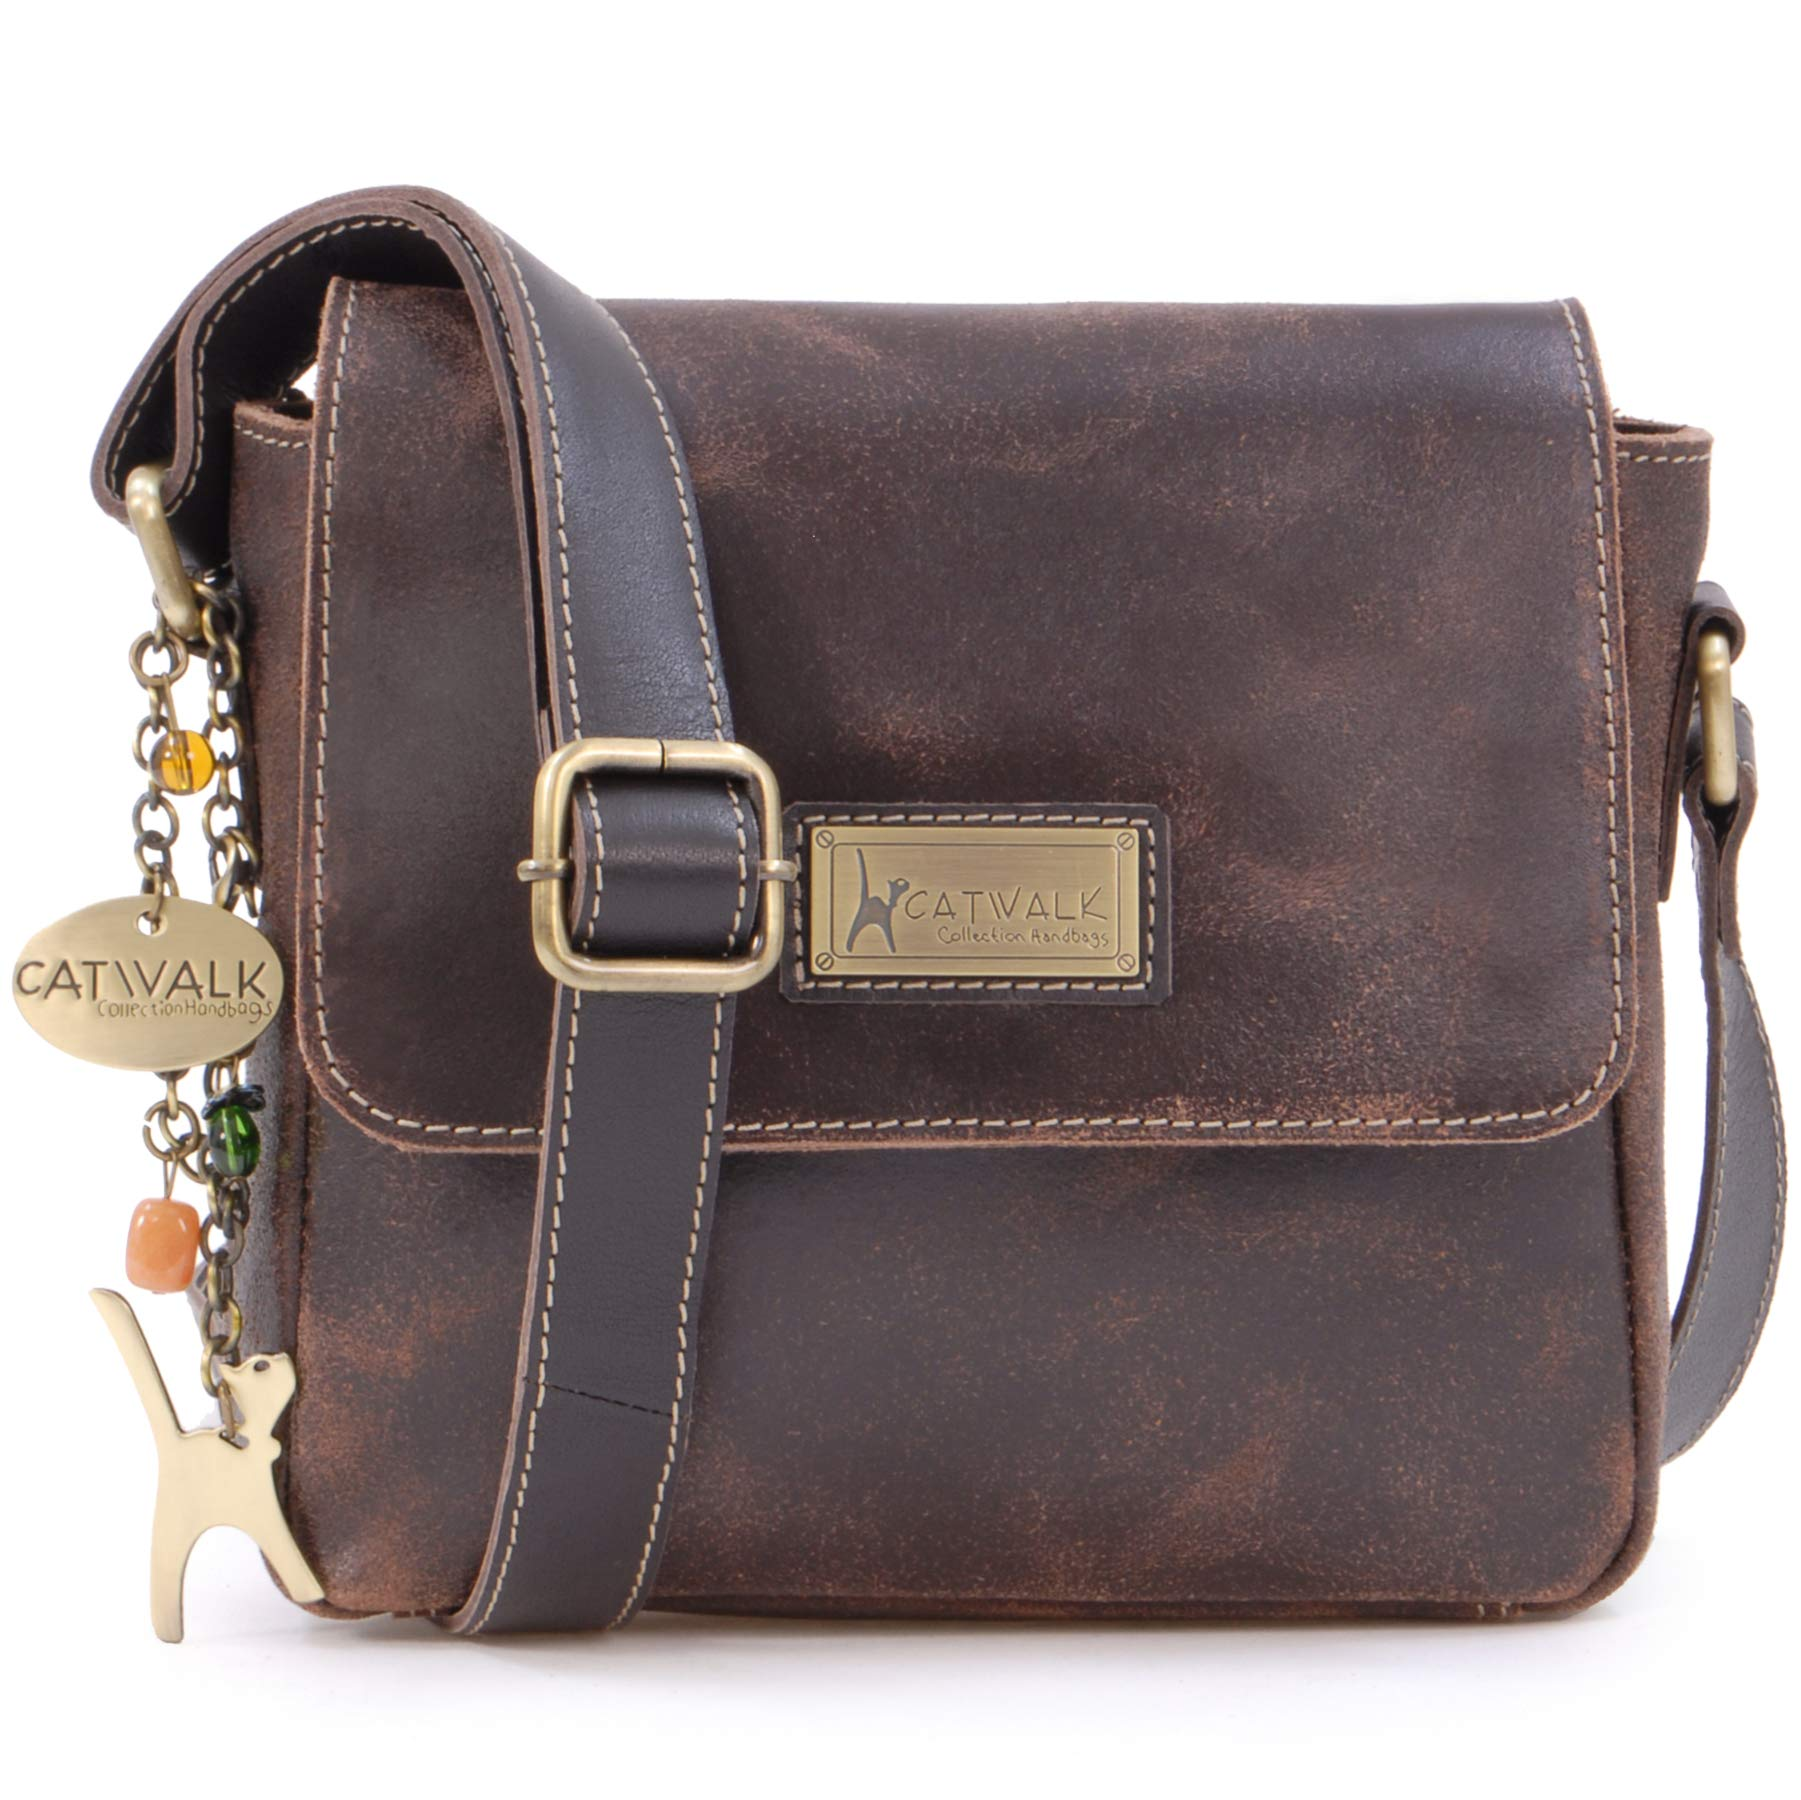 573344dd74f2 Catwalk Collection Handbags - Ladies Small Distressed Leather Cross ...